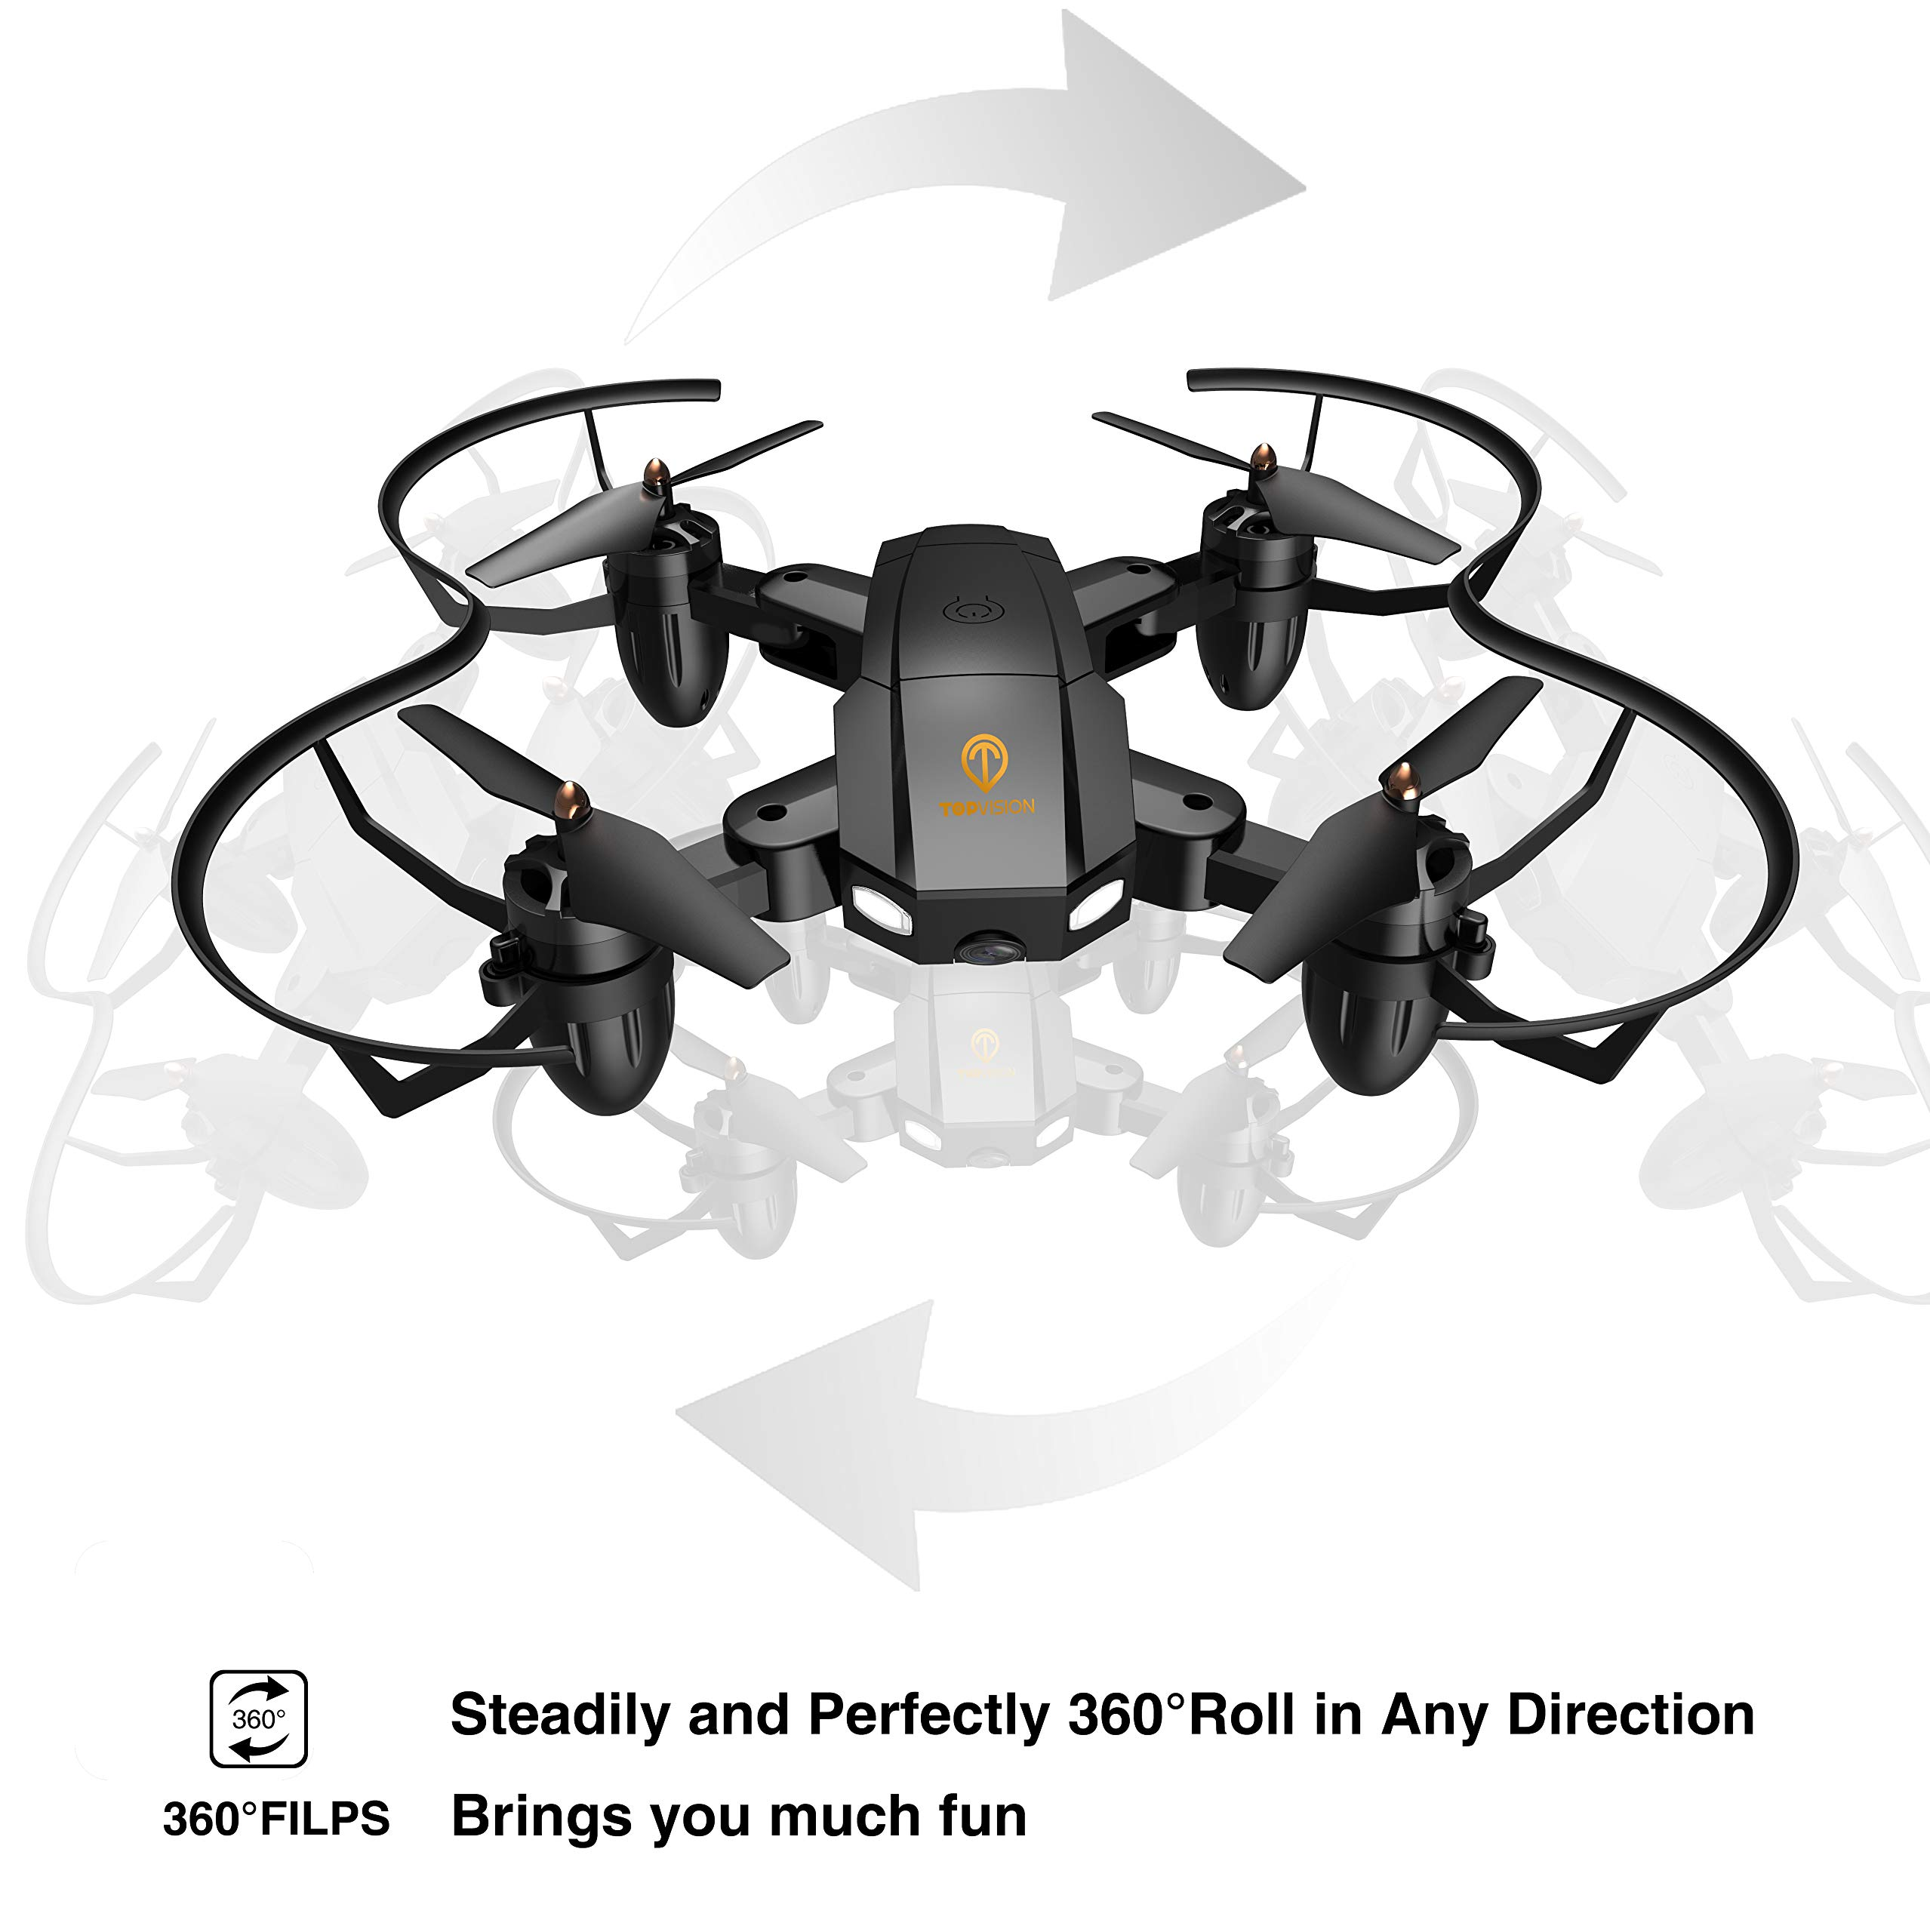 Drone with Camera, TOPVISION Foldable Quadcopter RC Drone with WiFi FPV HD Camera Live Video, Altitude Hold, One Key Start, APP Control, Black by T TOPVISION (Image #7)